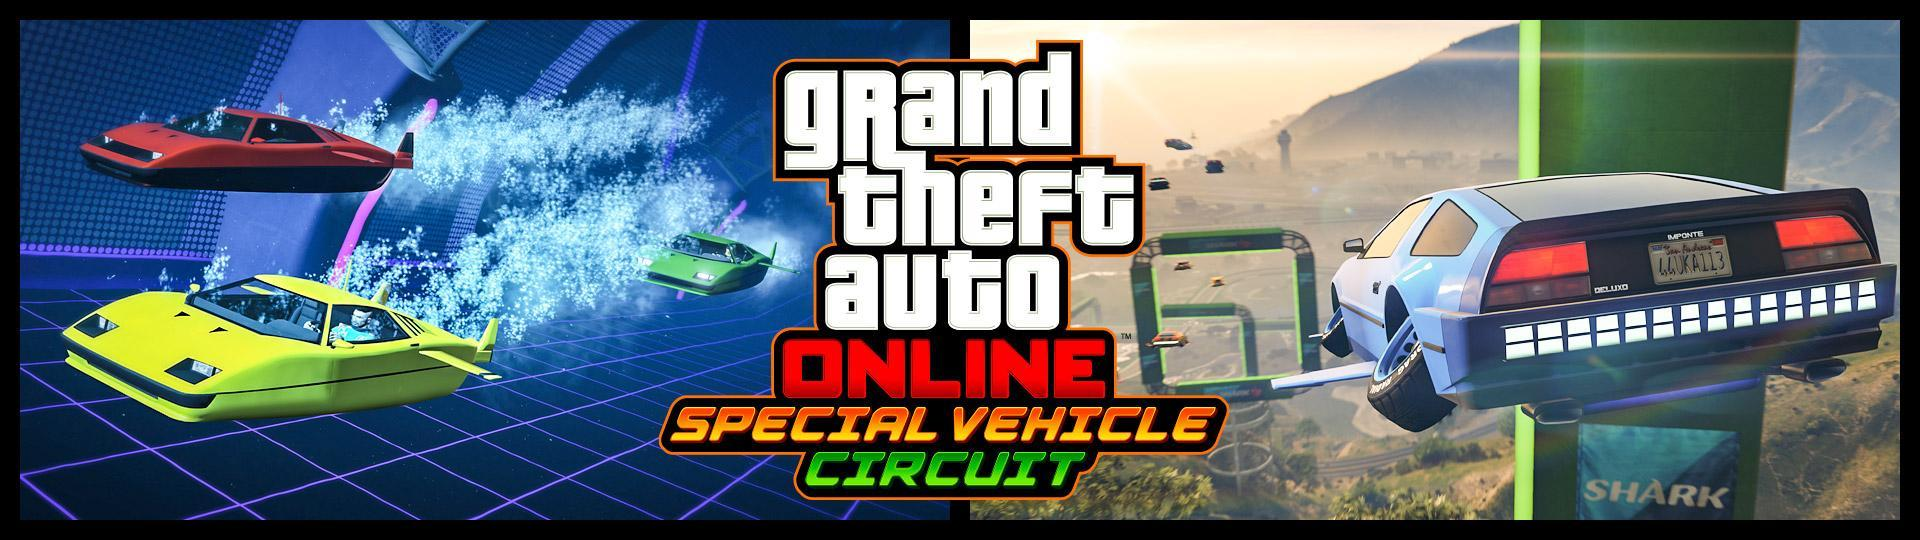 Deluxo, Stromberg & Thruster Special Vehicle Circuit Races Now in GTA Online